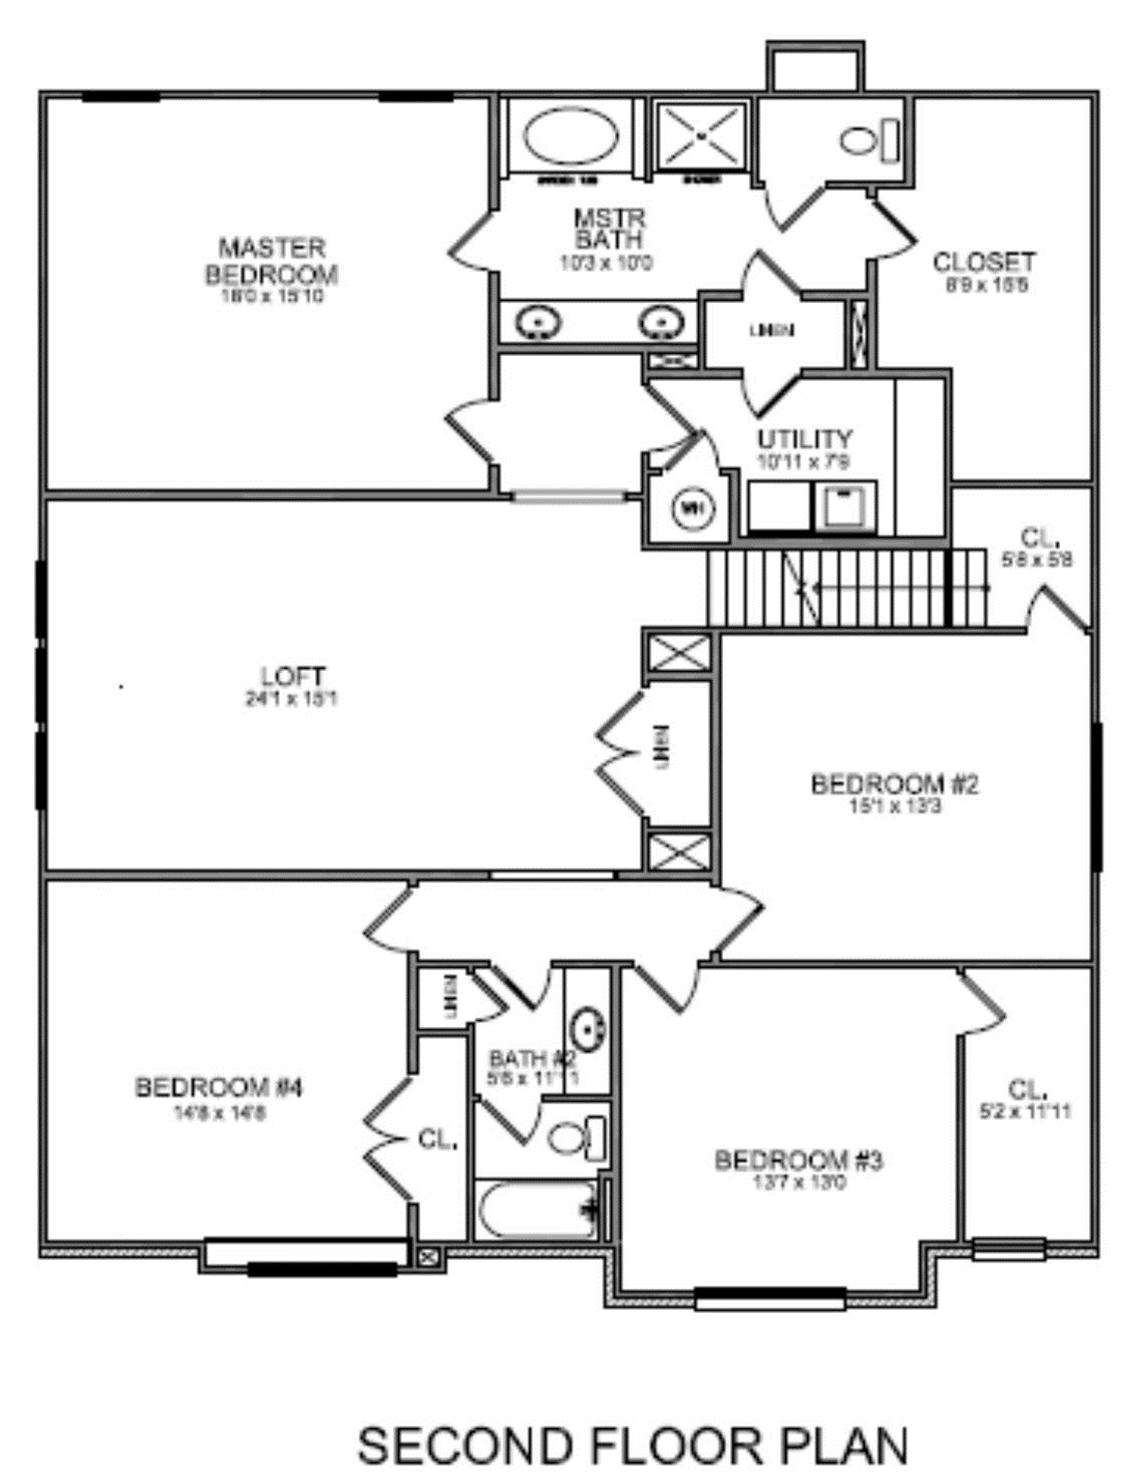 Upstairs master bathroom floor plans with walk in closet for Upstairs floor plans